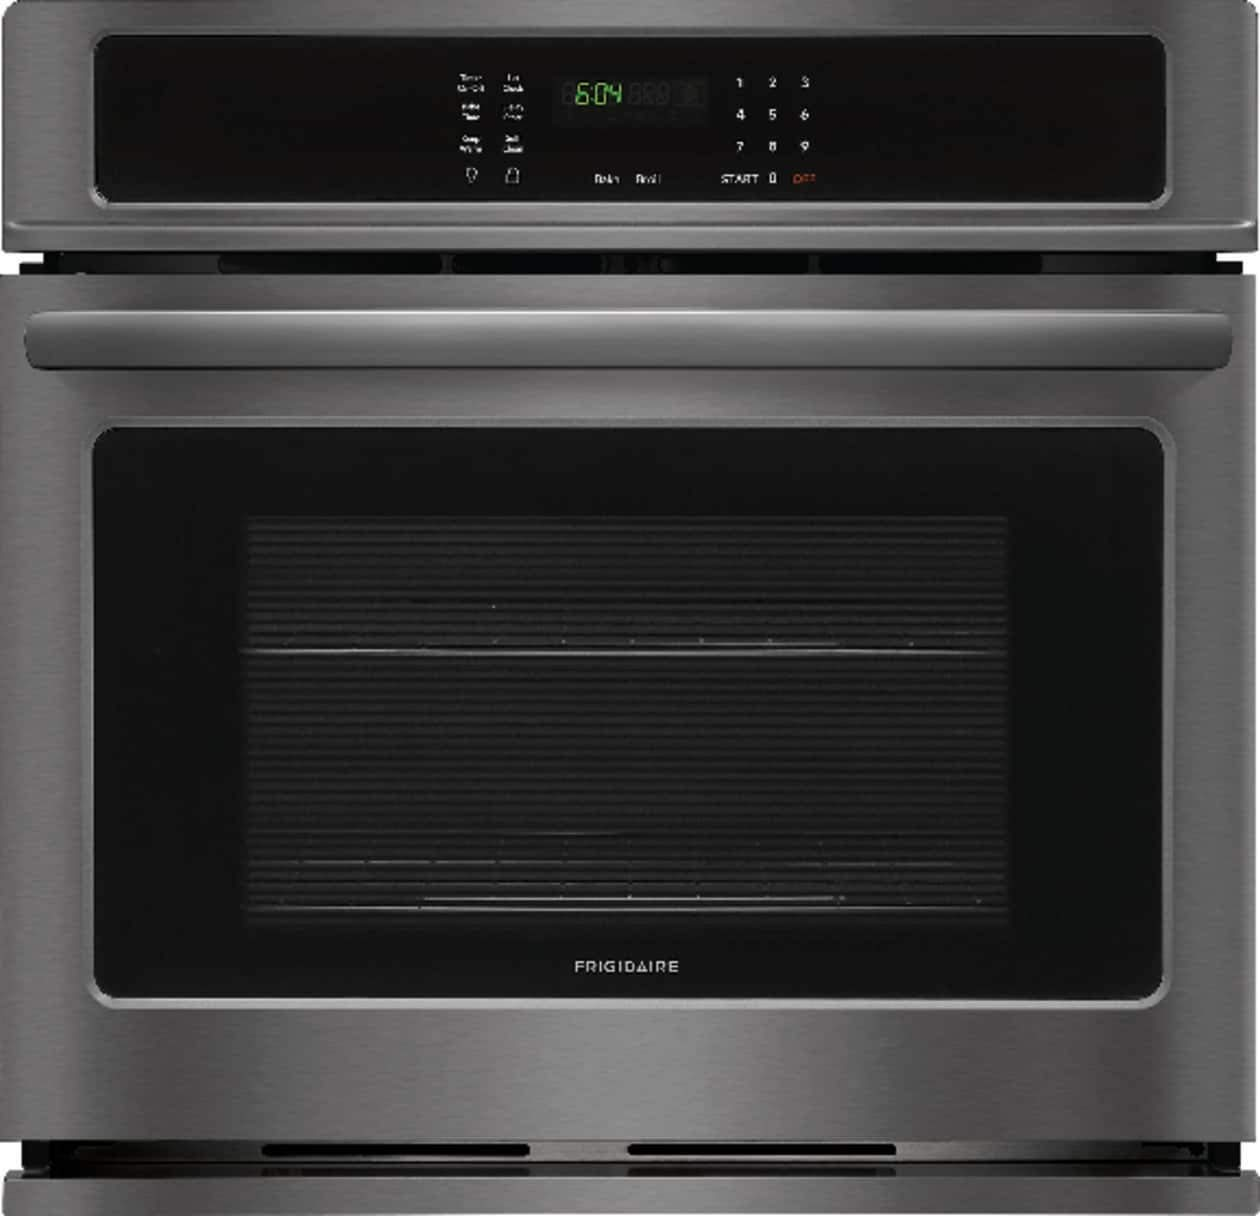 Frigidaire FFEW3026TD 30 Inch 4.6 cu. ft. Total Capacity Electric Single Wall Oven with 2 Oven Racks, in Black Stainless Steel